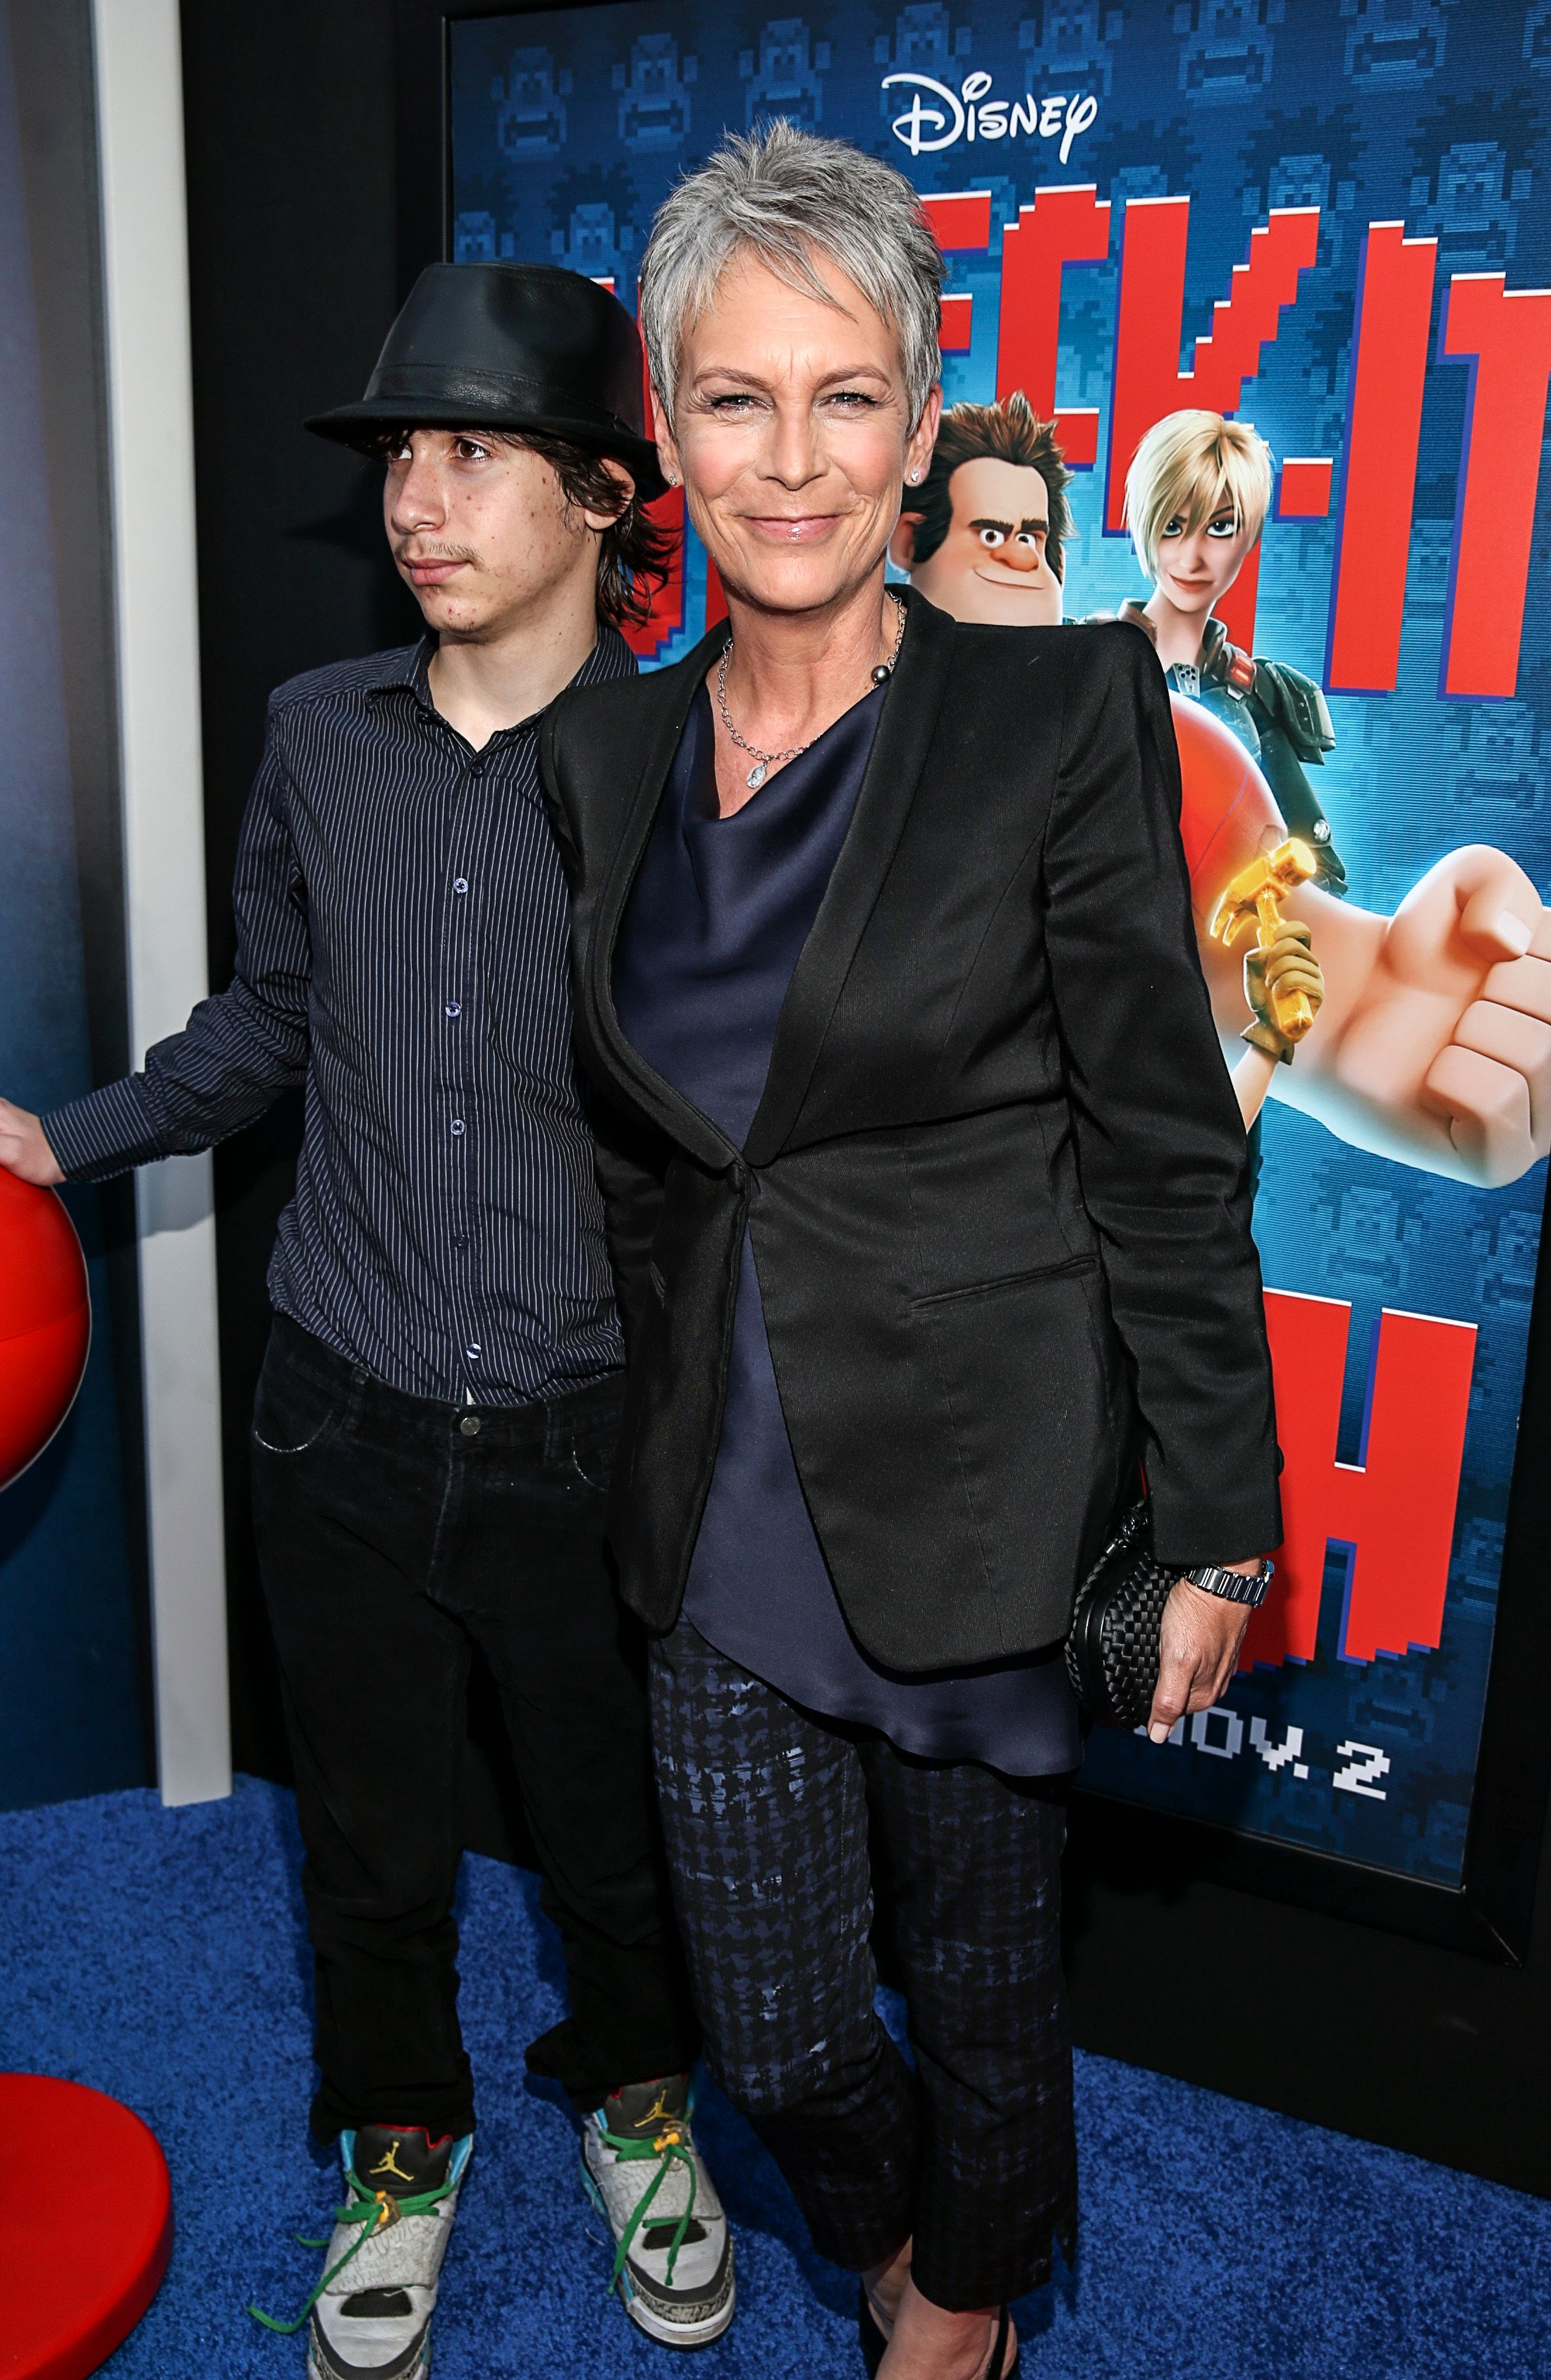 """Jamie Lee Curtis and Thomas Guest during the Premiere Of Walt Disney Animation Studios' """"Wreck-It Ralph"""" at the El Capitan Theatre on October 29, 2012 